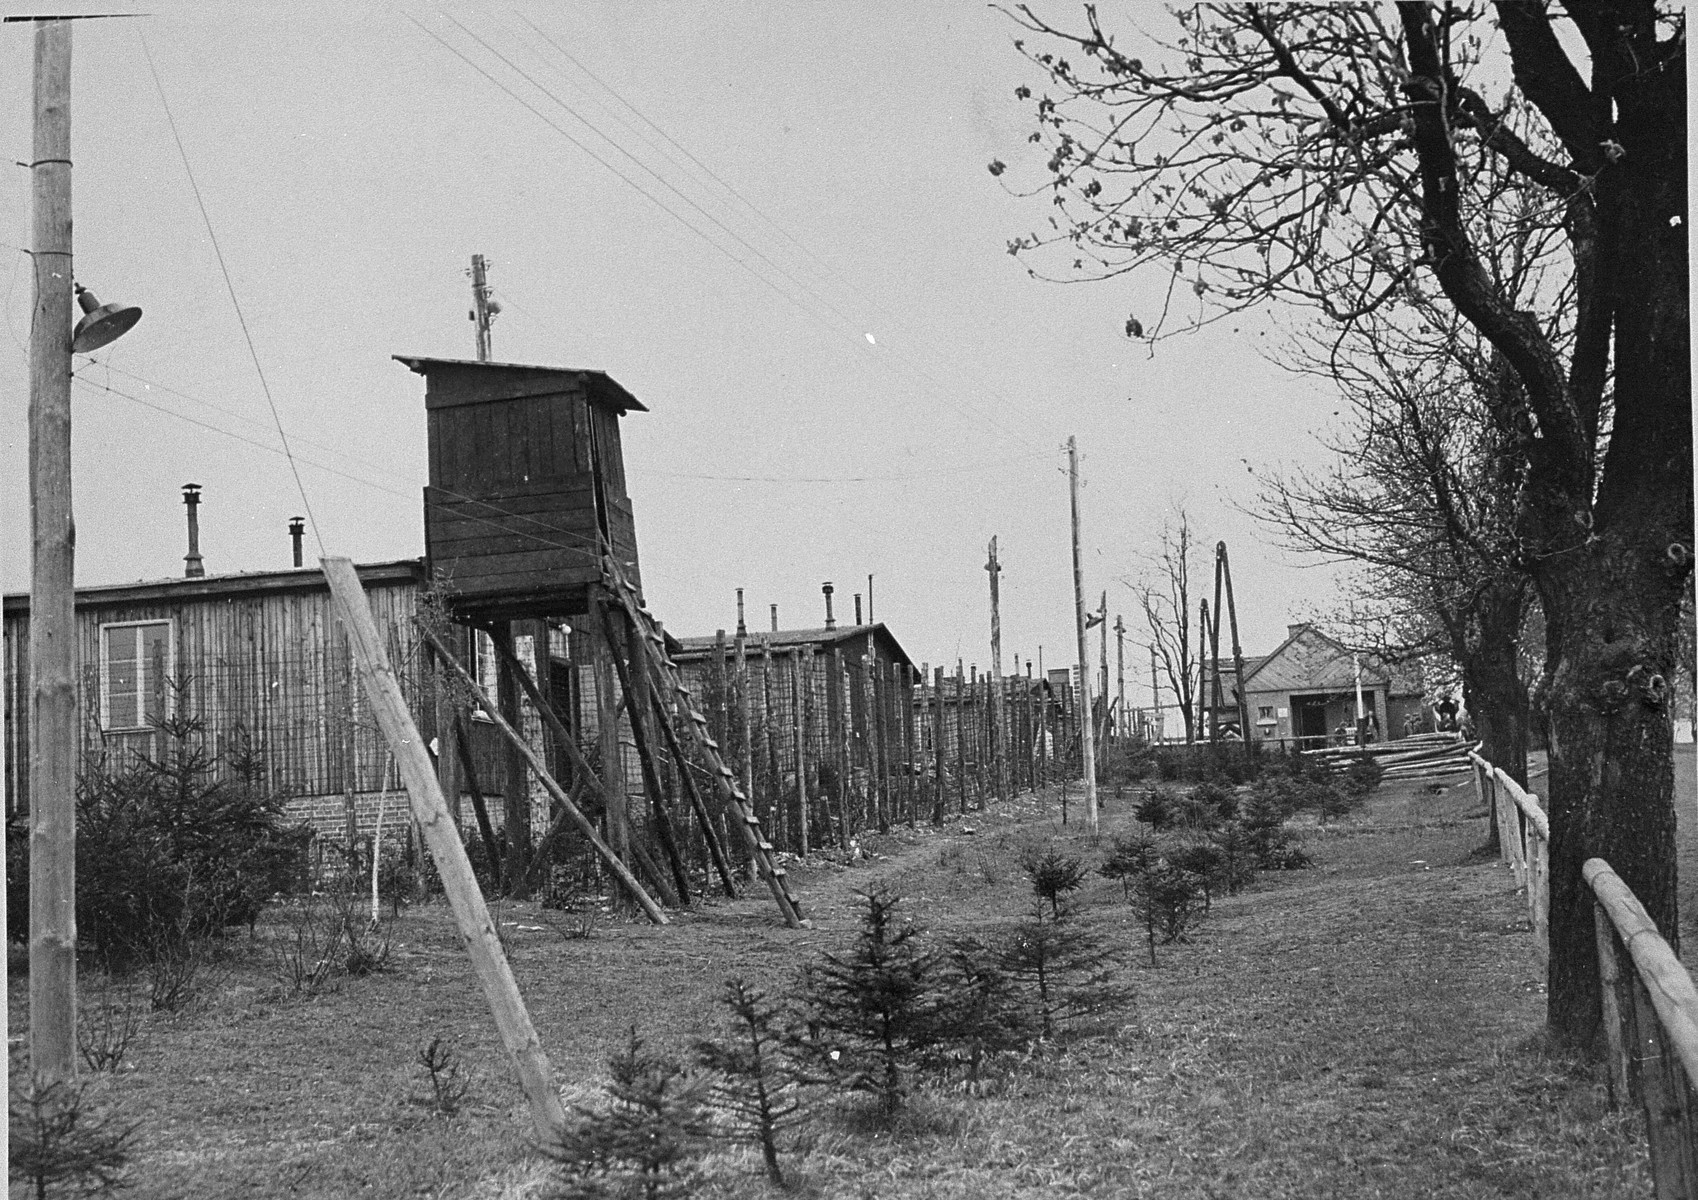 View of a section of the Ohrdruf concentration camp that includes a watchtower, barracks, and barbed wire fencing.